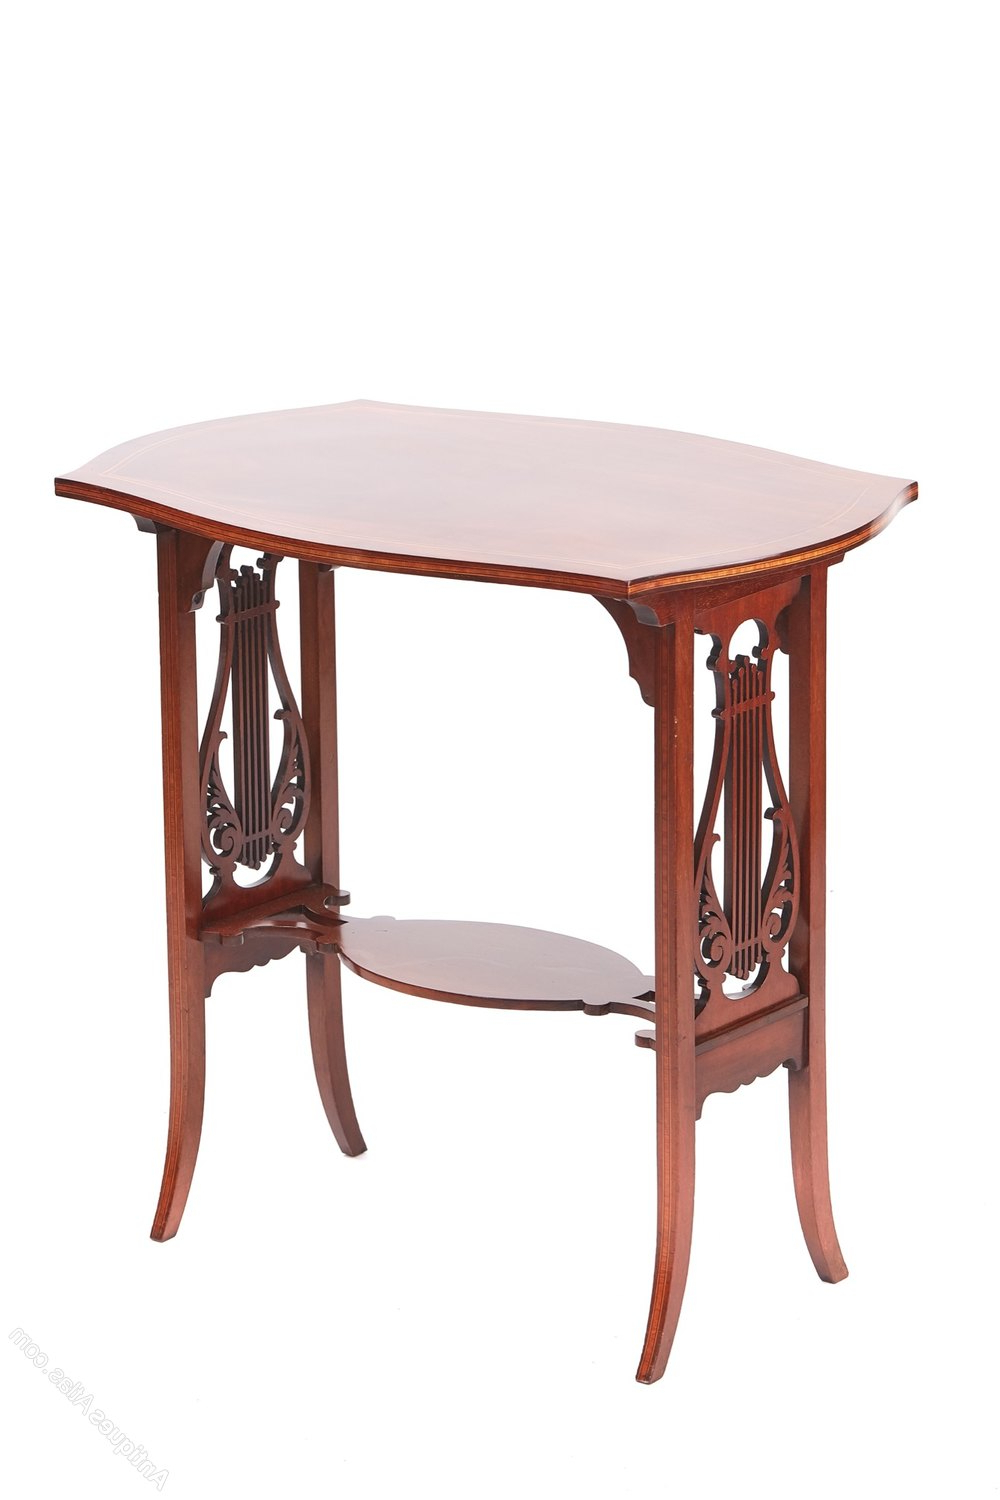 Most Current Lyre Coffee Tables Intended For Edwardian Inlaid Mahogany Lyre End Support Table – Antiques Atlas (View 17 of 20)